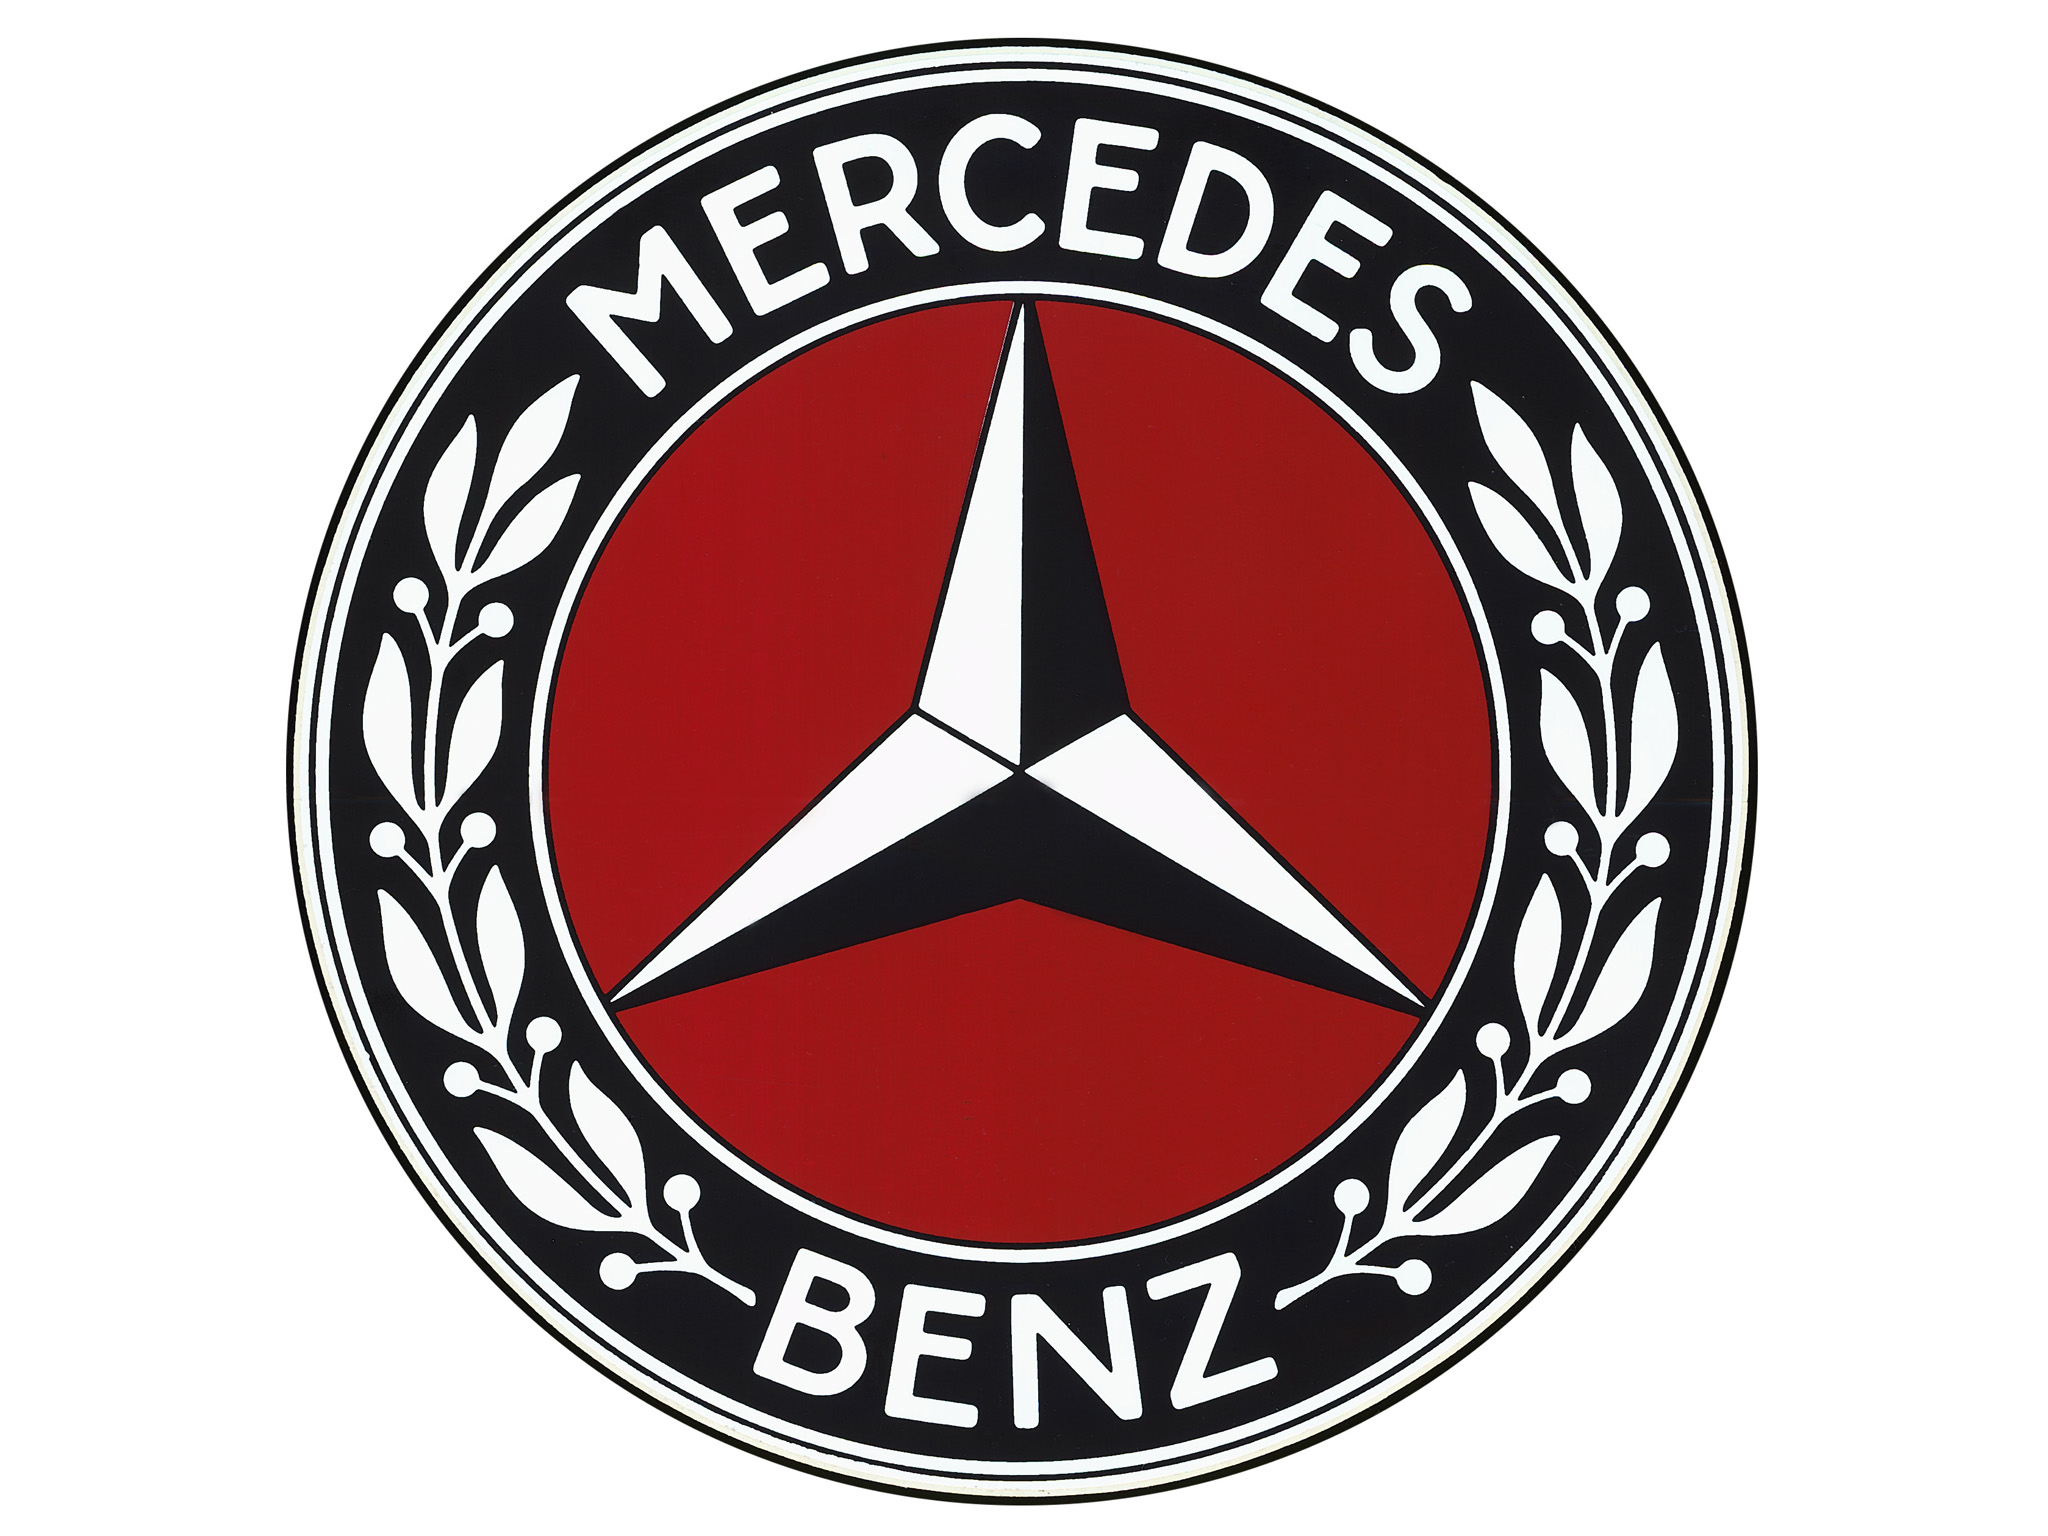 Mercedes benz logo images real clipart and vector graphics for Mercedes benz car names